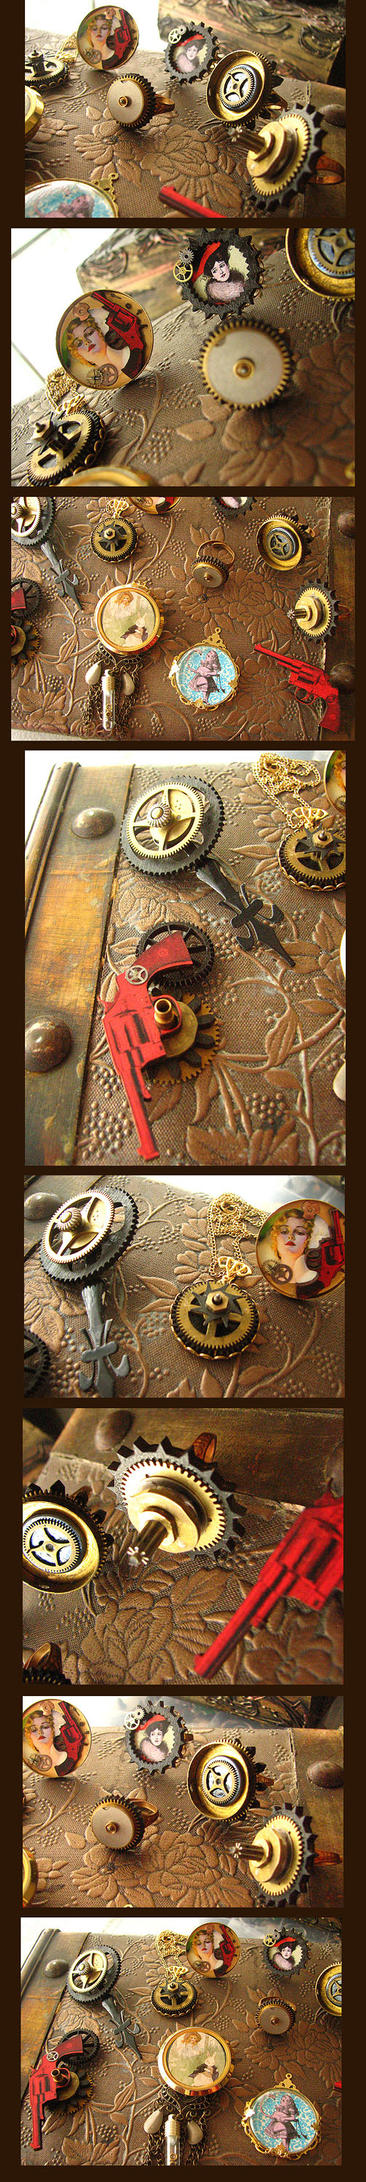 Steampunk Jewelry- COMING SOON by asunder